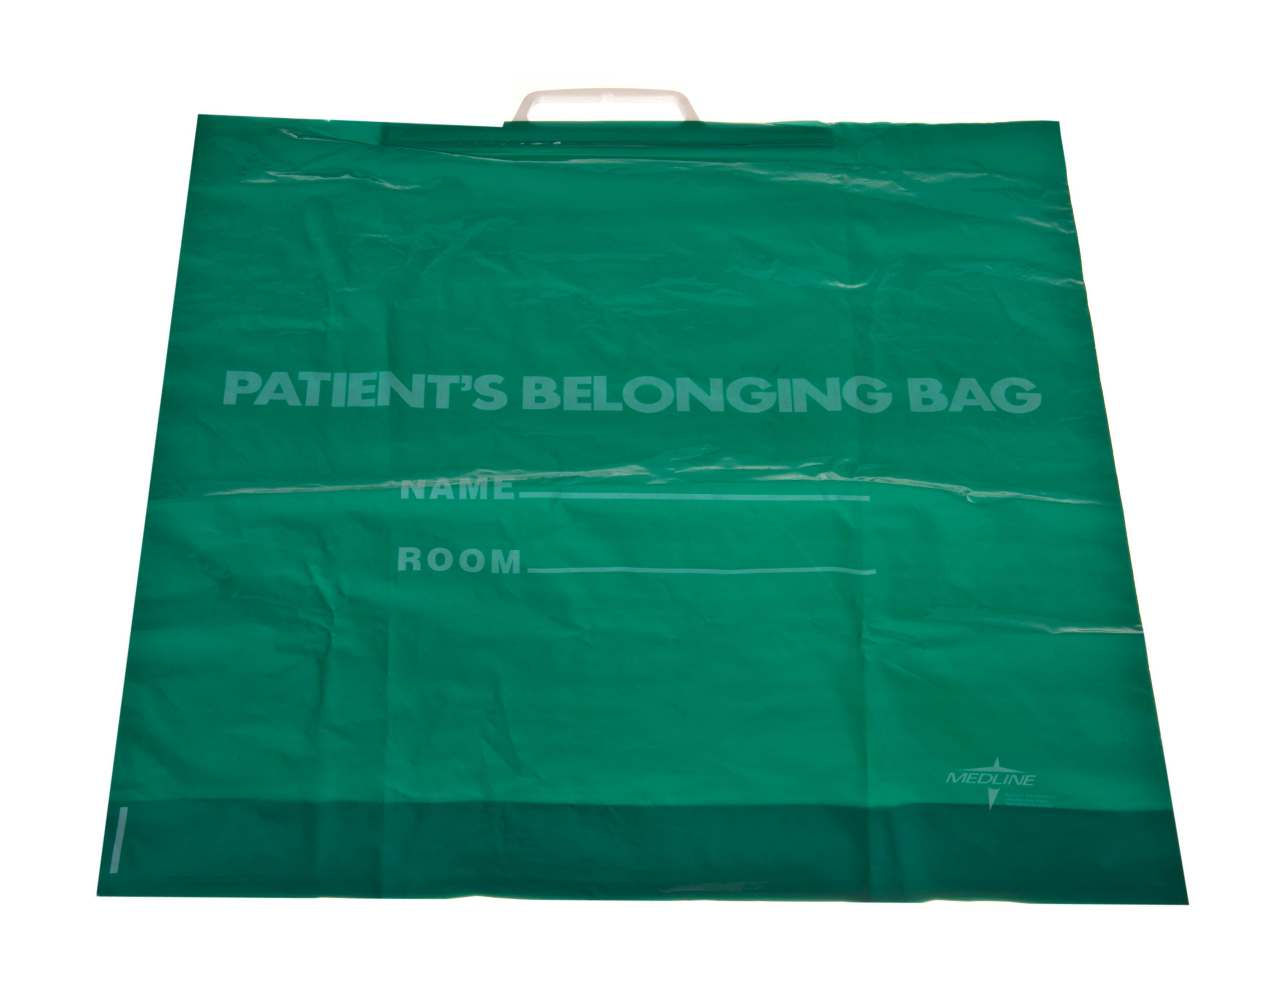 Rigid Handle Plastic Bag - Patient, Belonging, Rgd Hdl, Drk Green, Box of 250 - Model NON026320GR